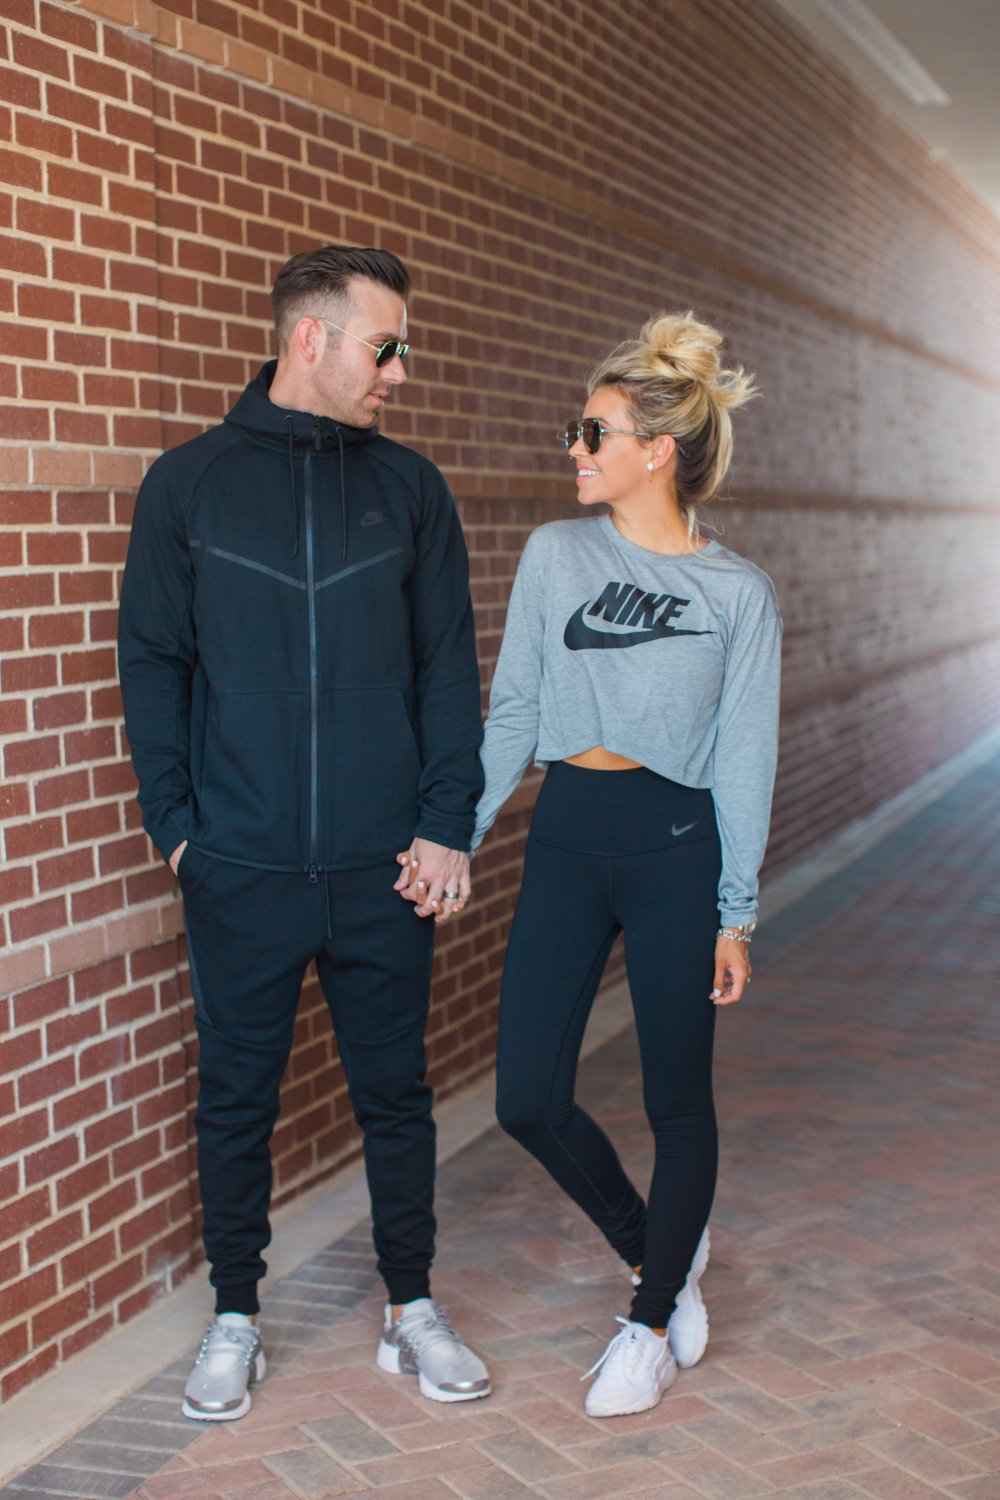 A couple who works out together, stays together. Men and women's Nike workout attire!